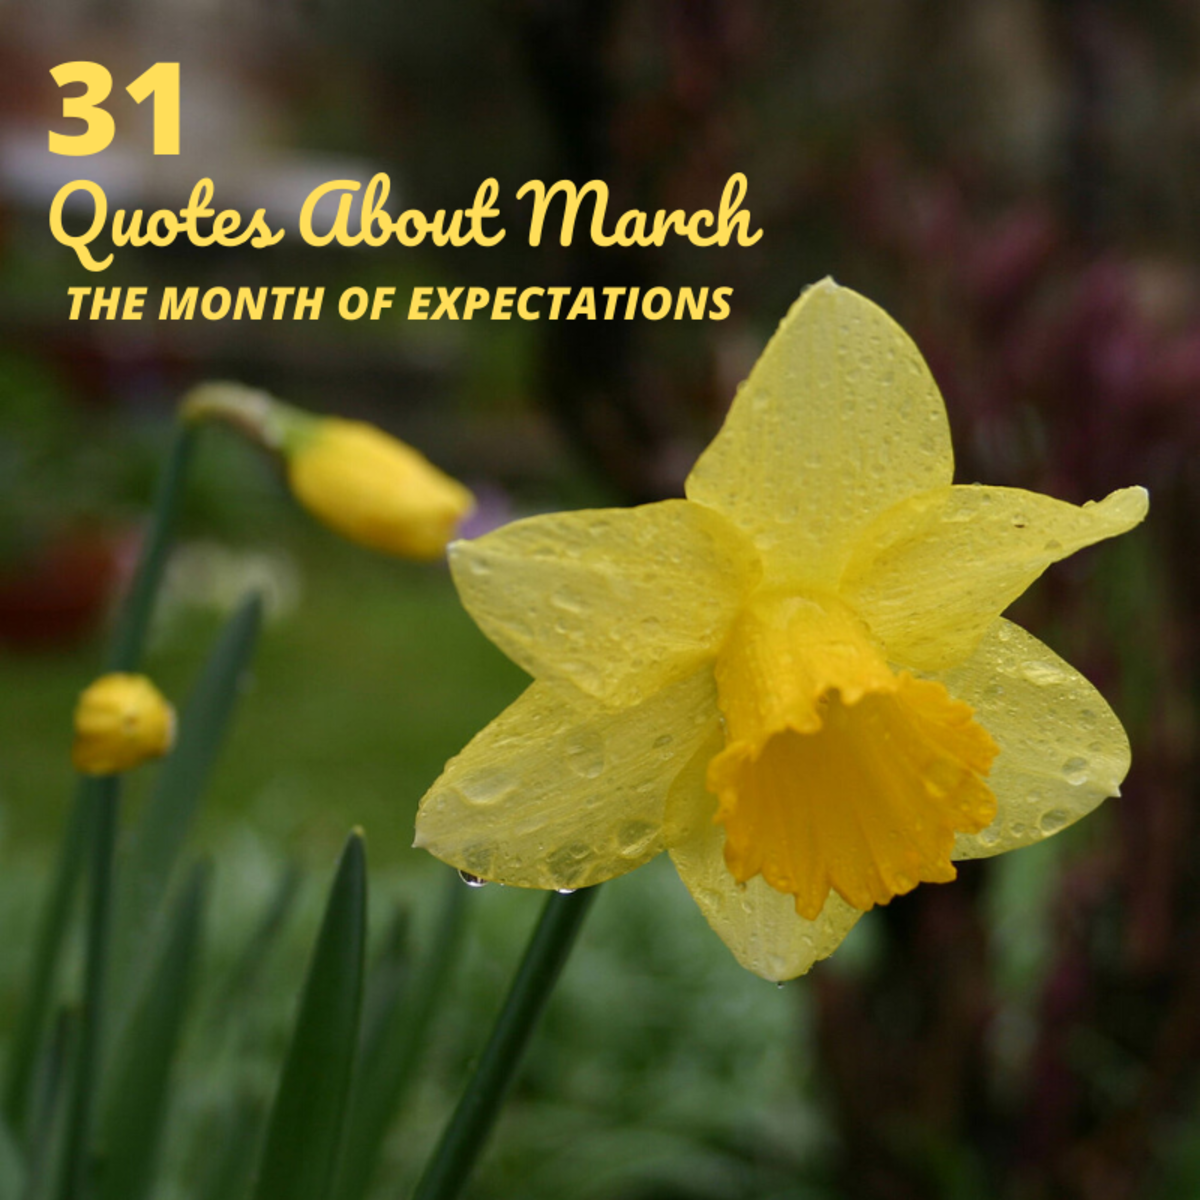 31 Quotes About March: The Month of Expectations